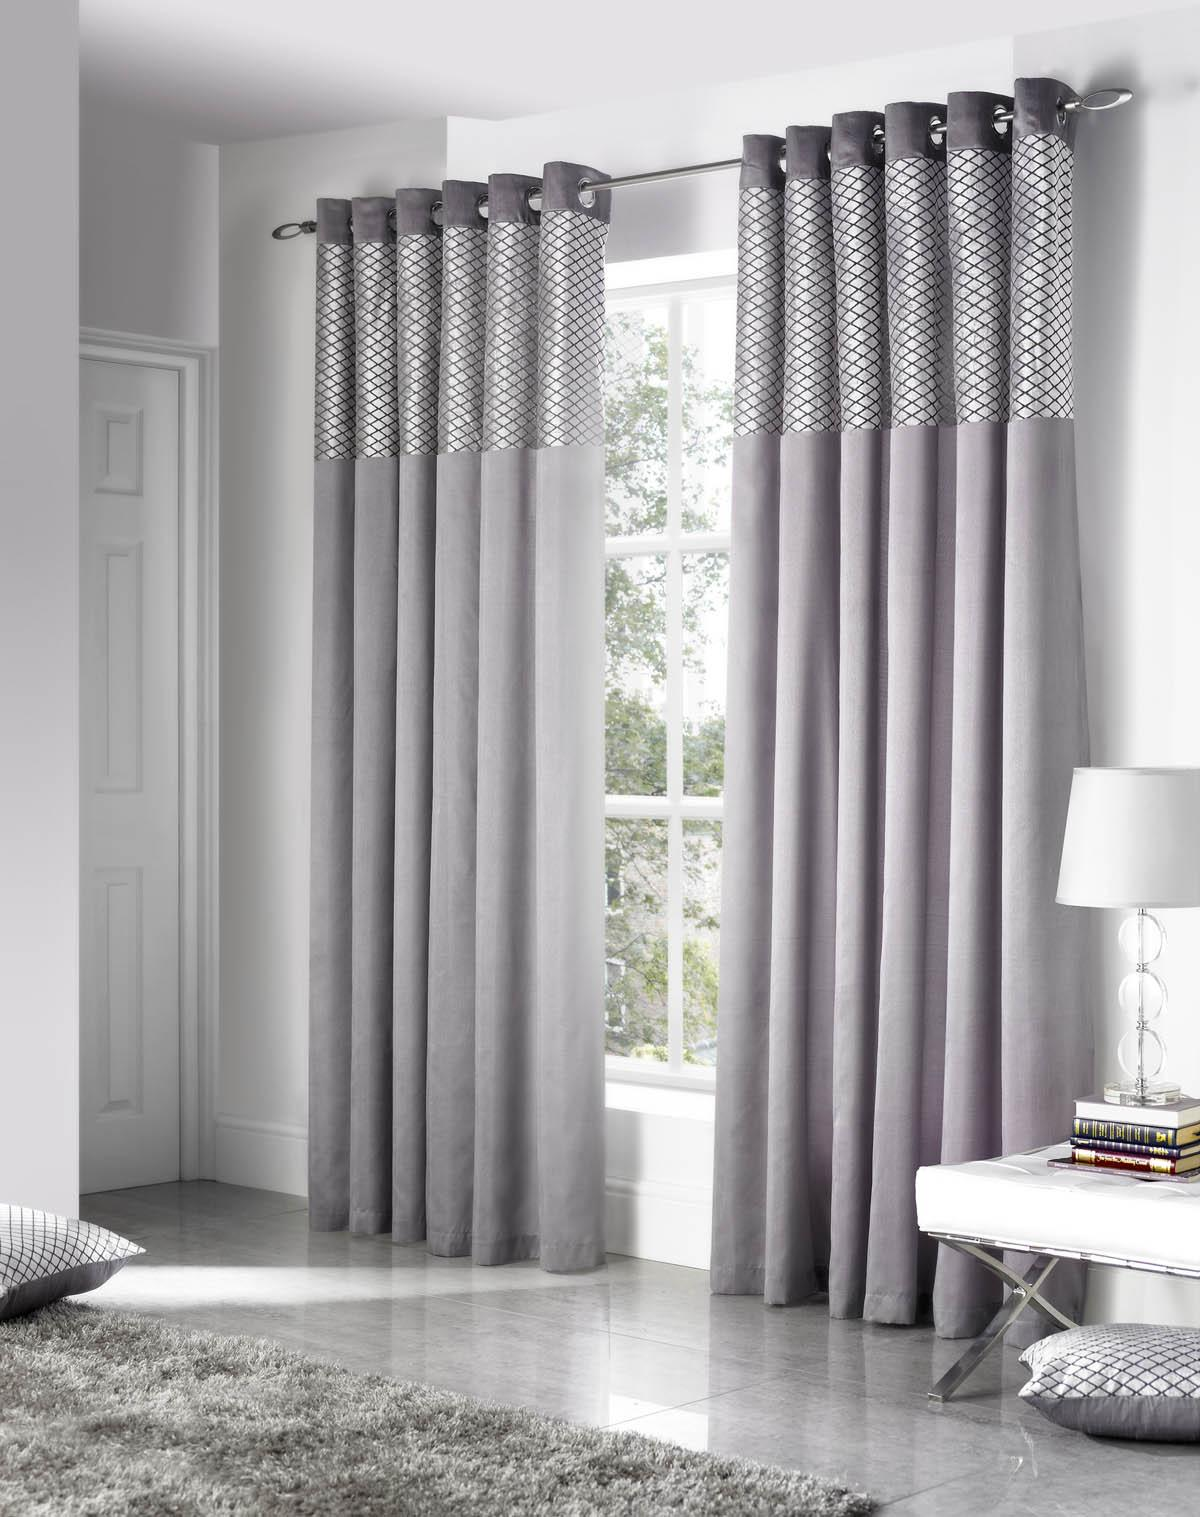 Decorate your home with silver curtains